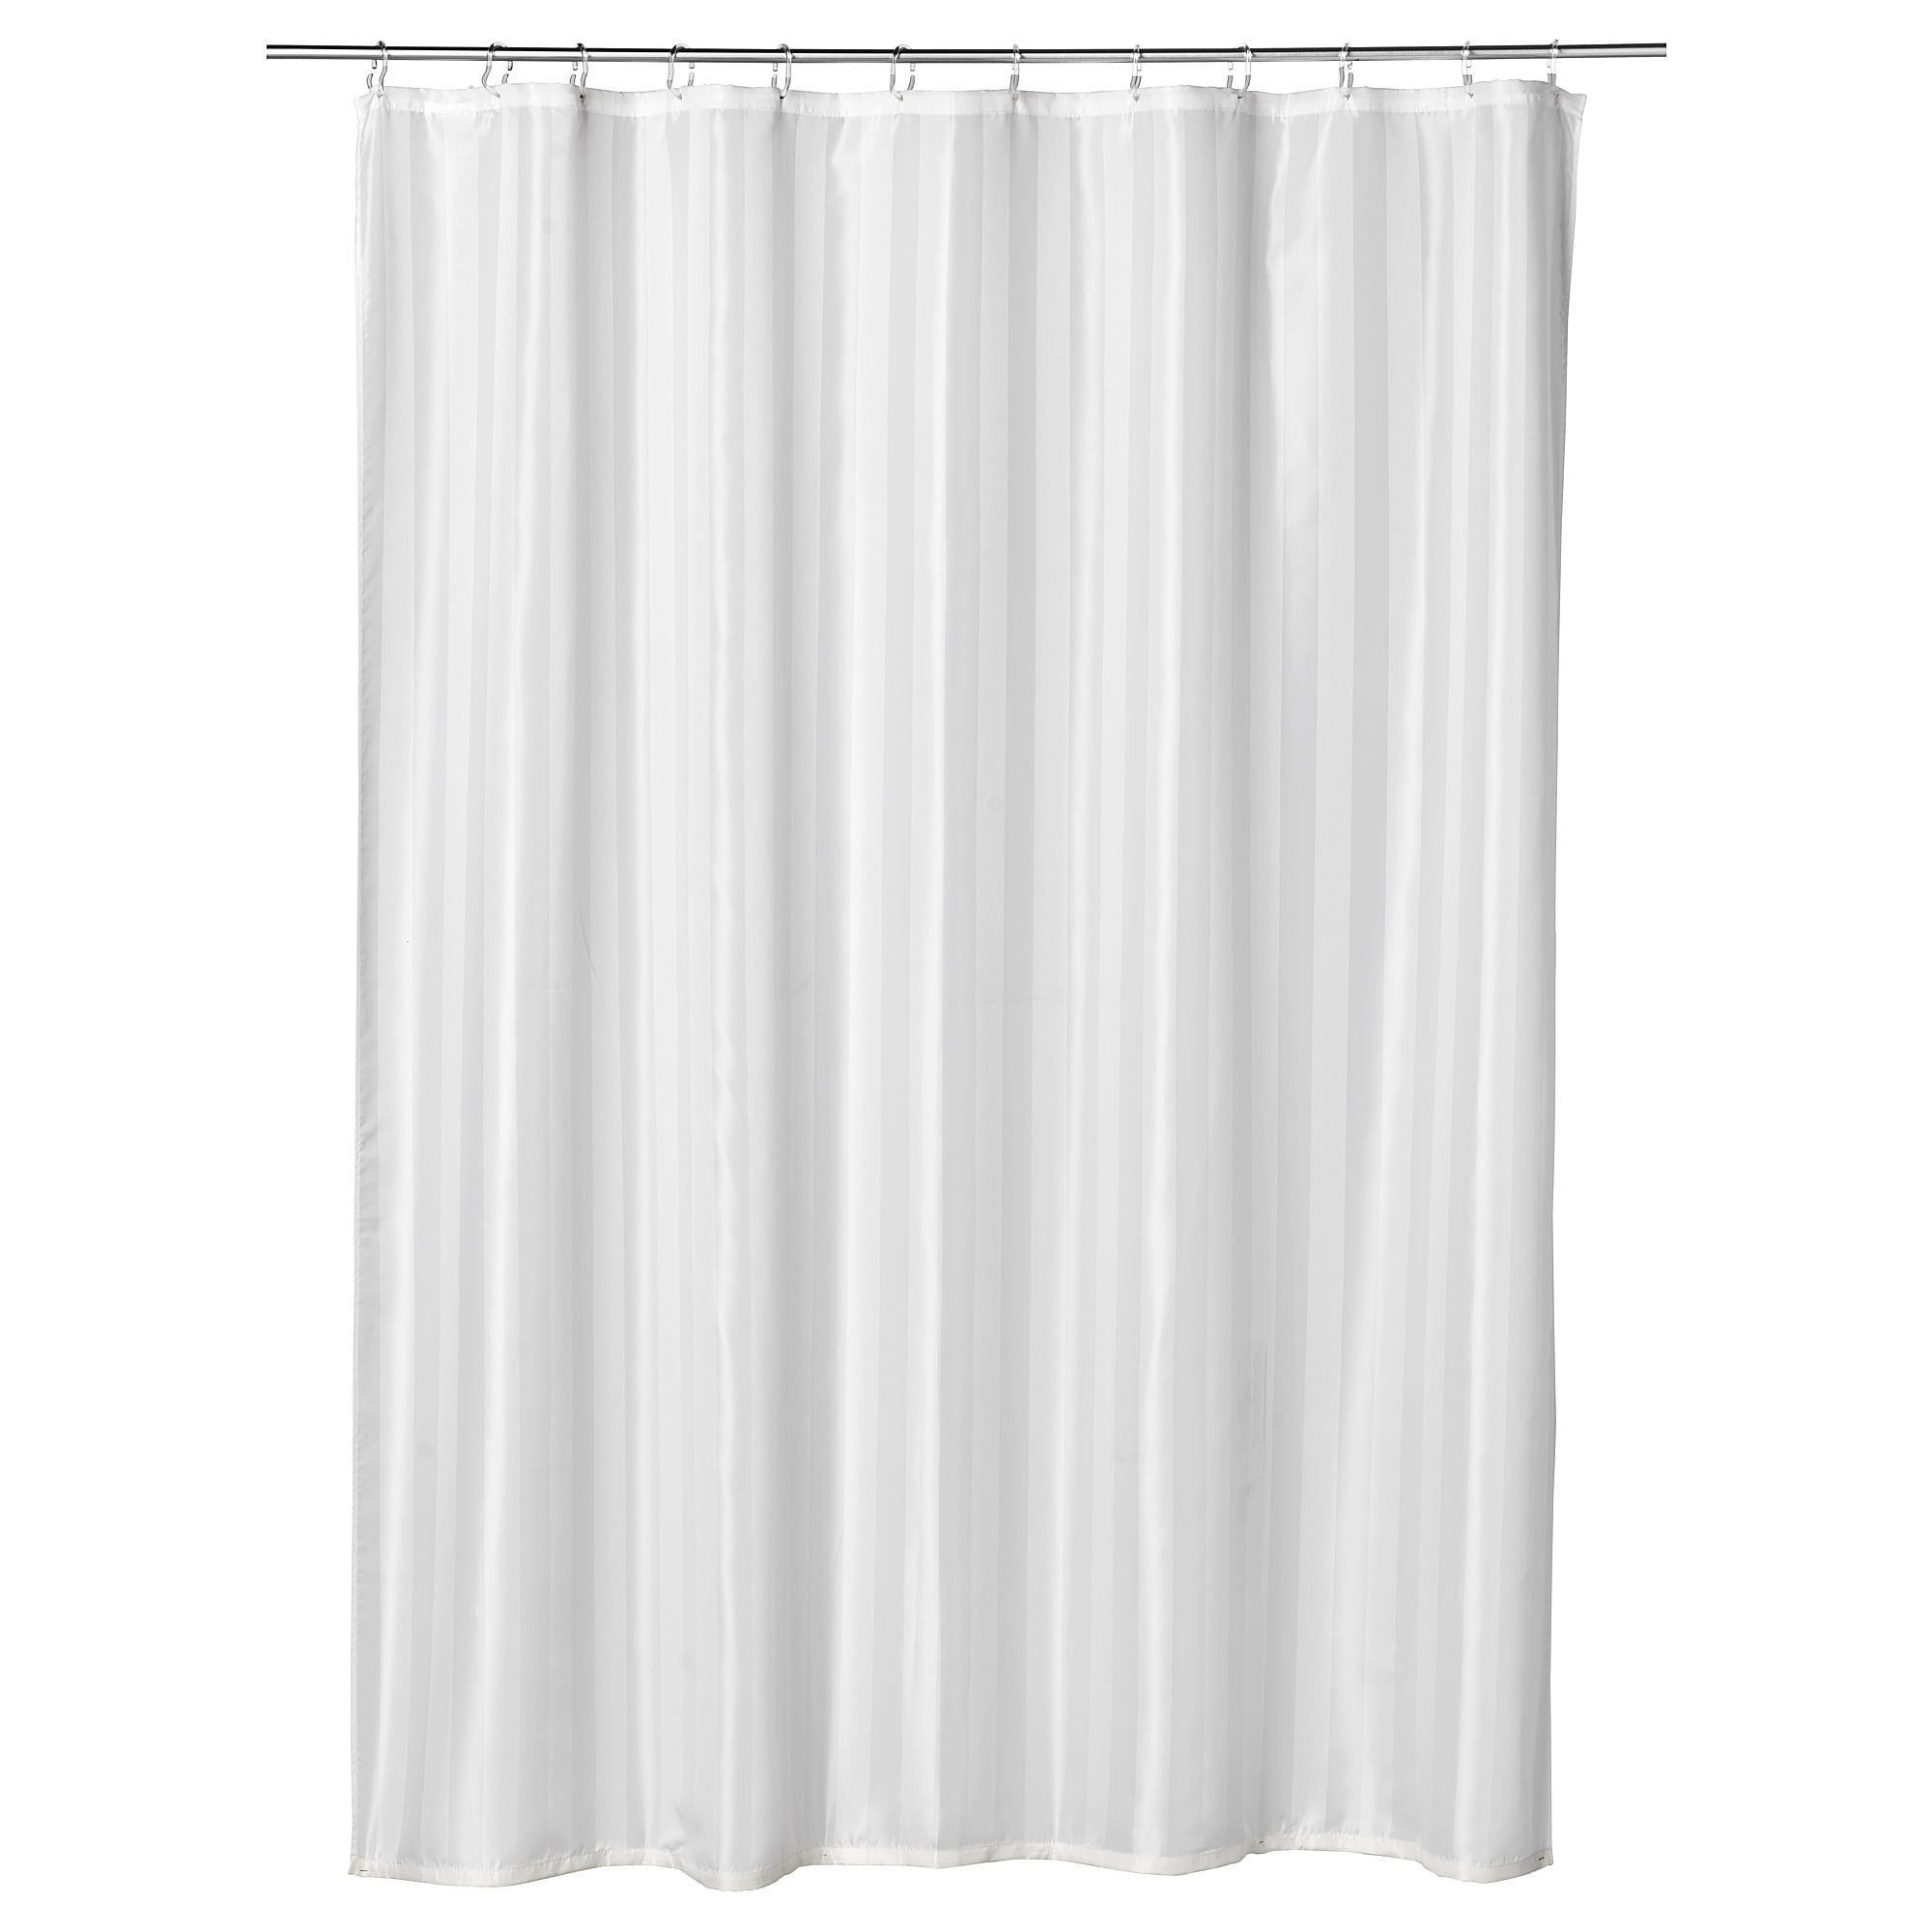 home distinguishable shower white curtains of waffle design curtain variety